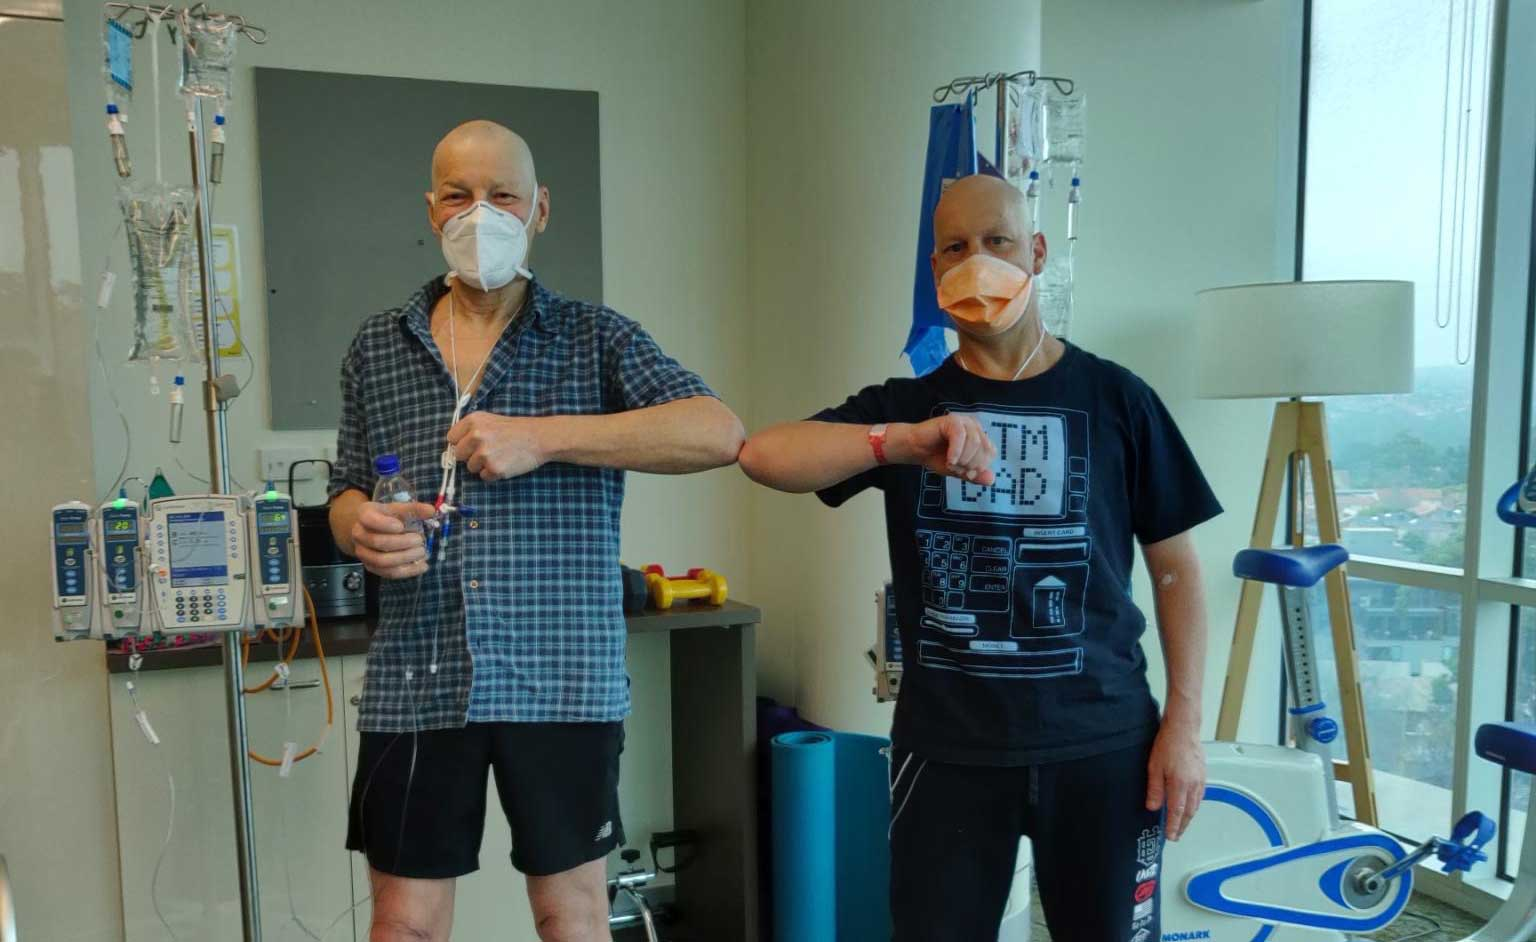 Greg and Alan in hospital